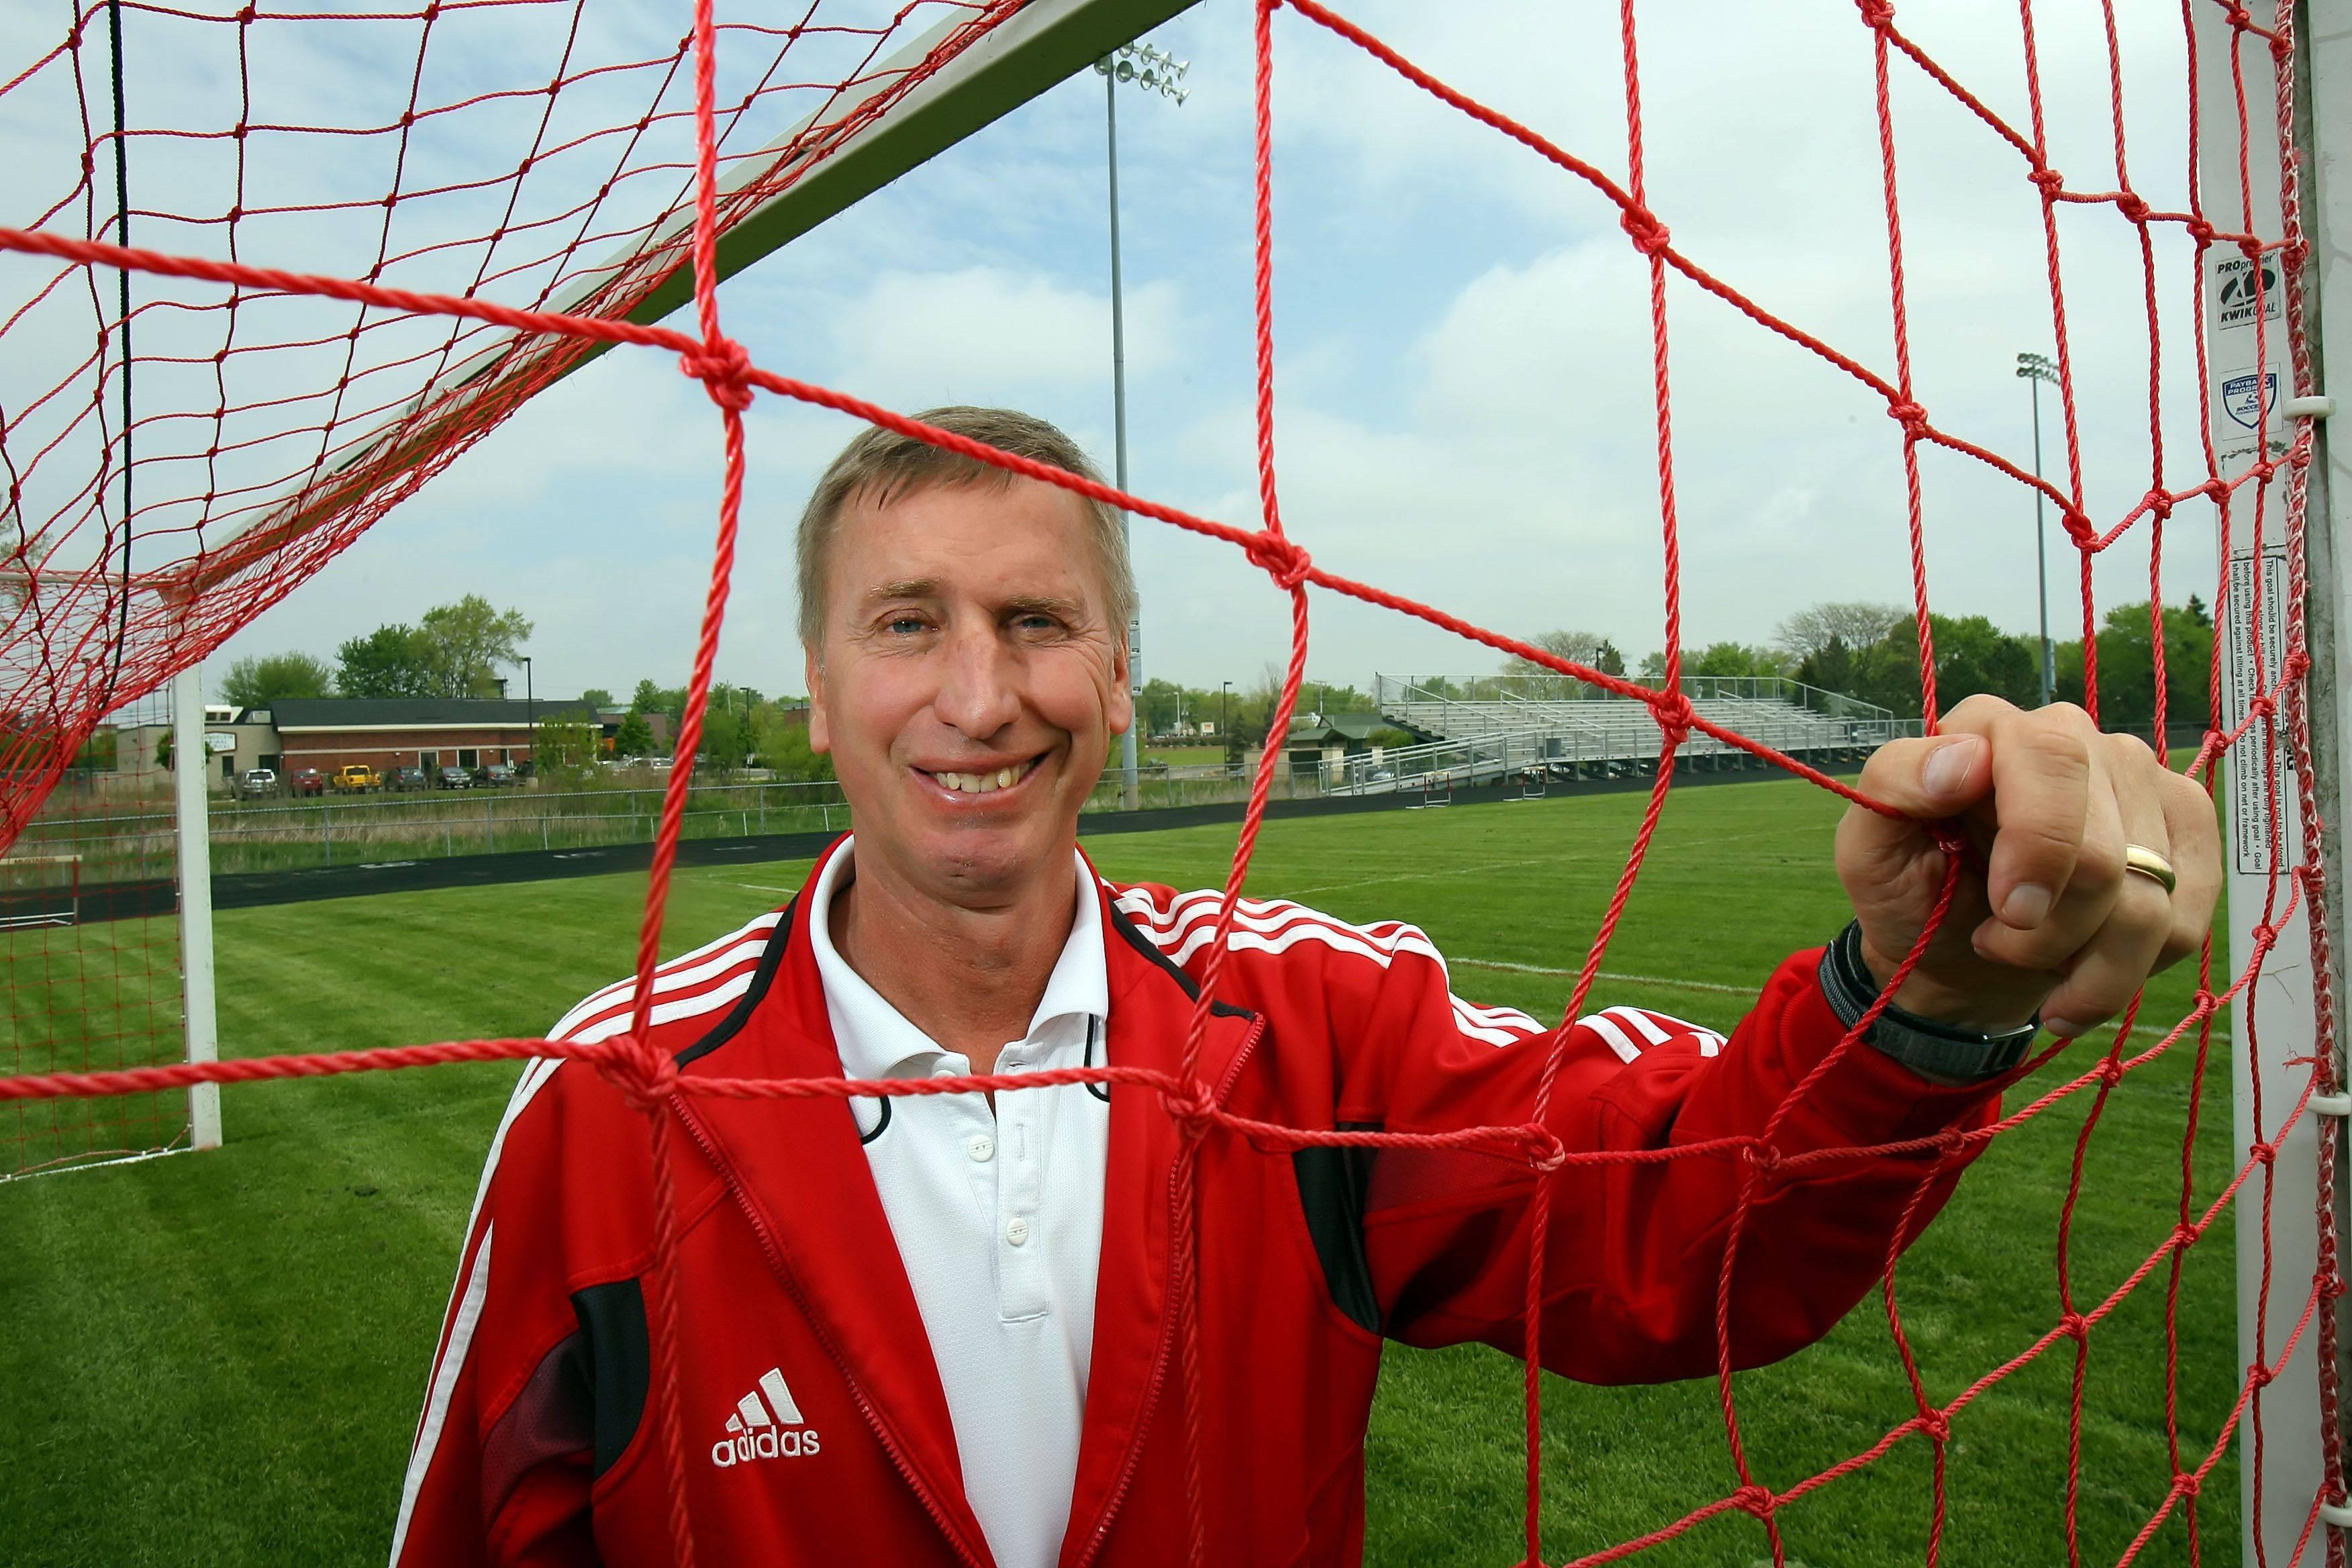 Mundelein soccer coach Dave Ekstrom is retiring after 30 years at the school.